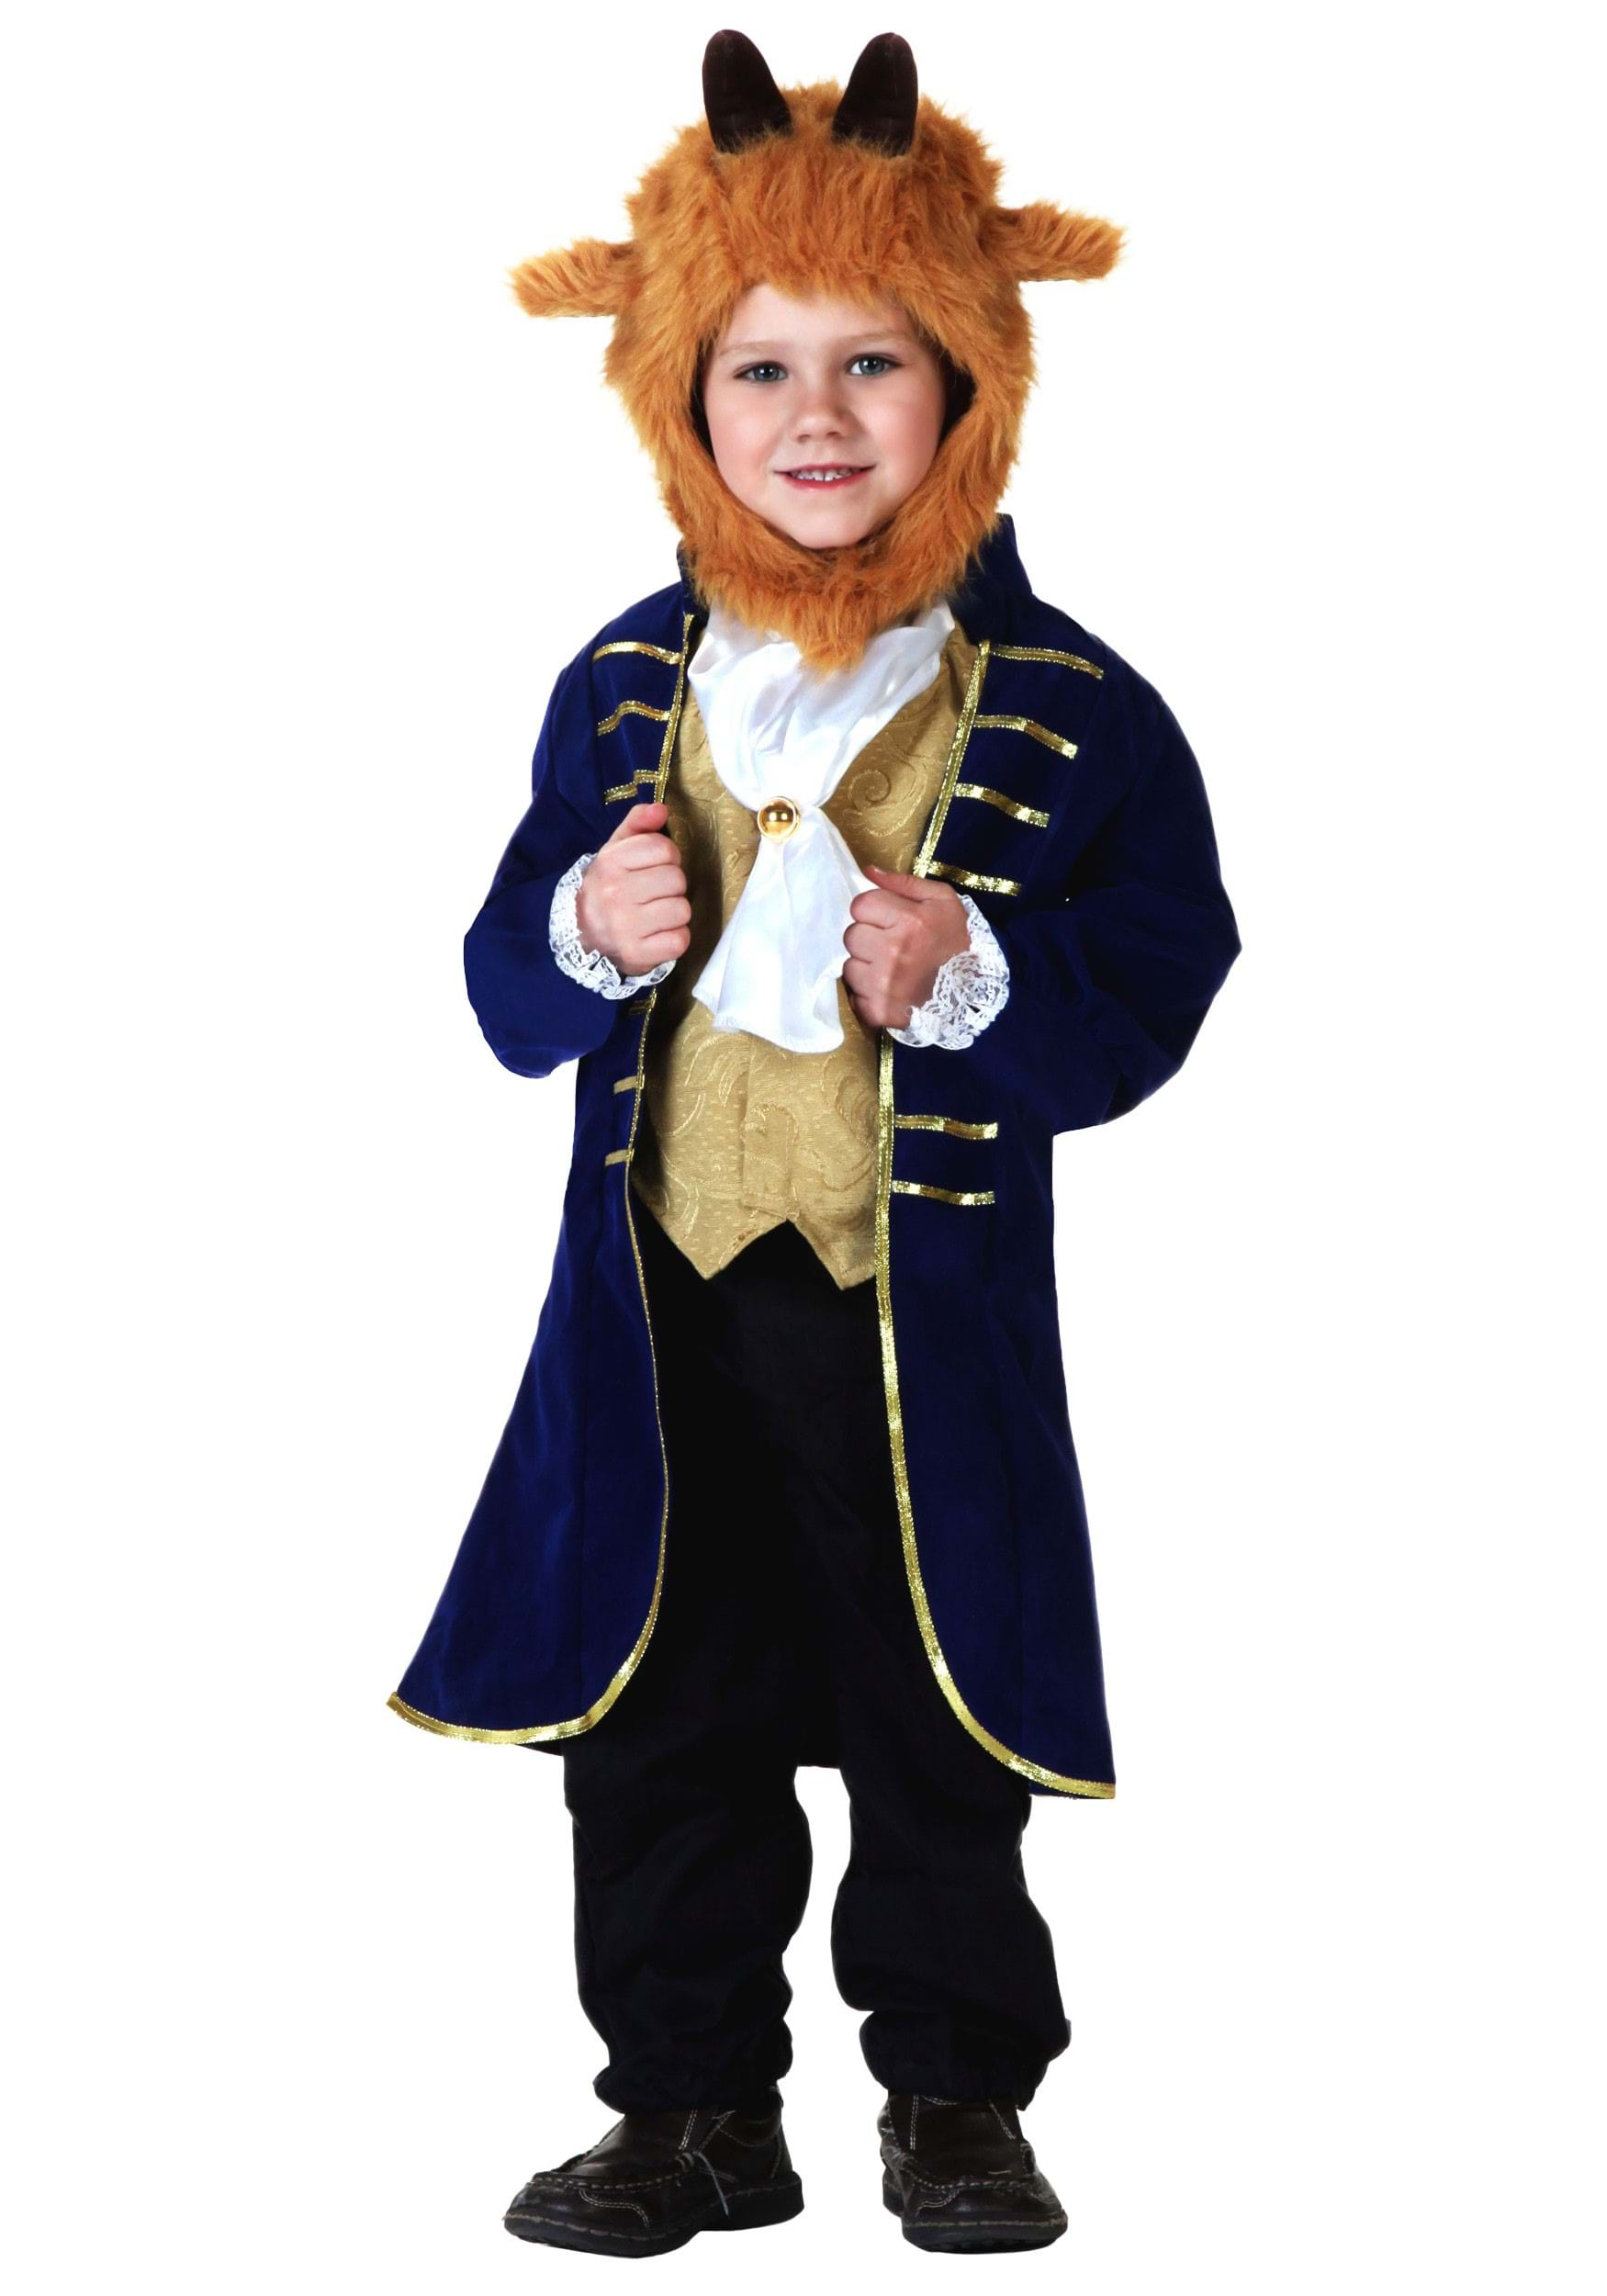 ... Child kids toddler beast Halloween costume includes Jacket Vest Front Ascot Headpiece ...  sc 1 st  HalloweenAngel & Best Beauty and the Beast Costumes for Kids